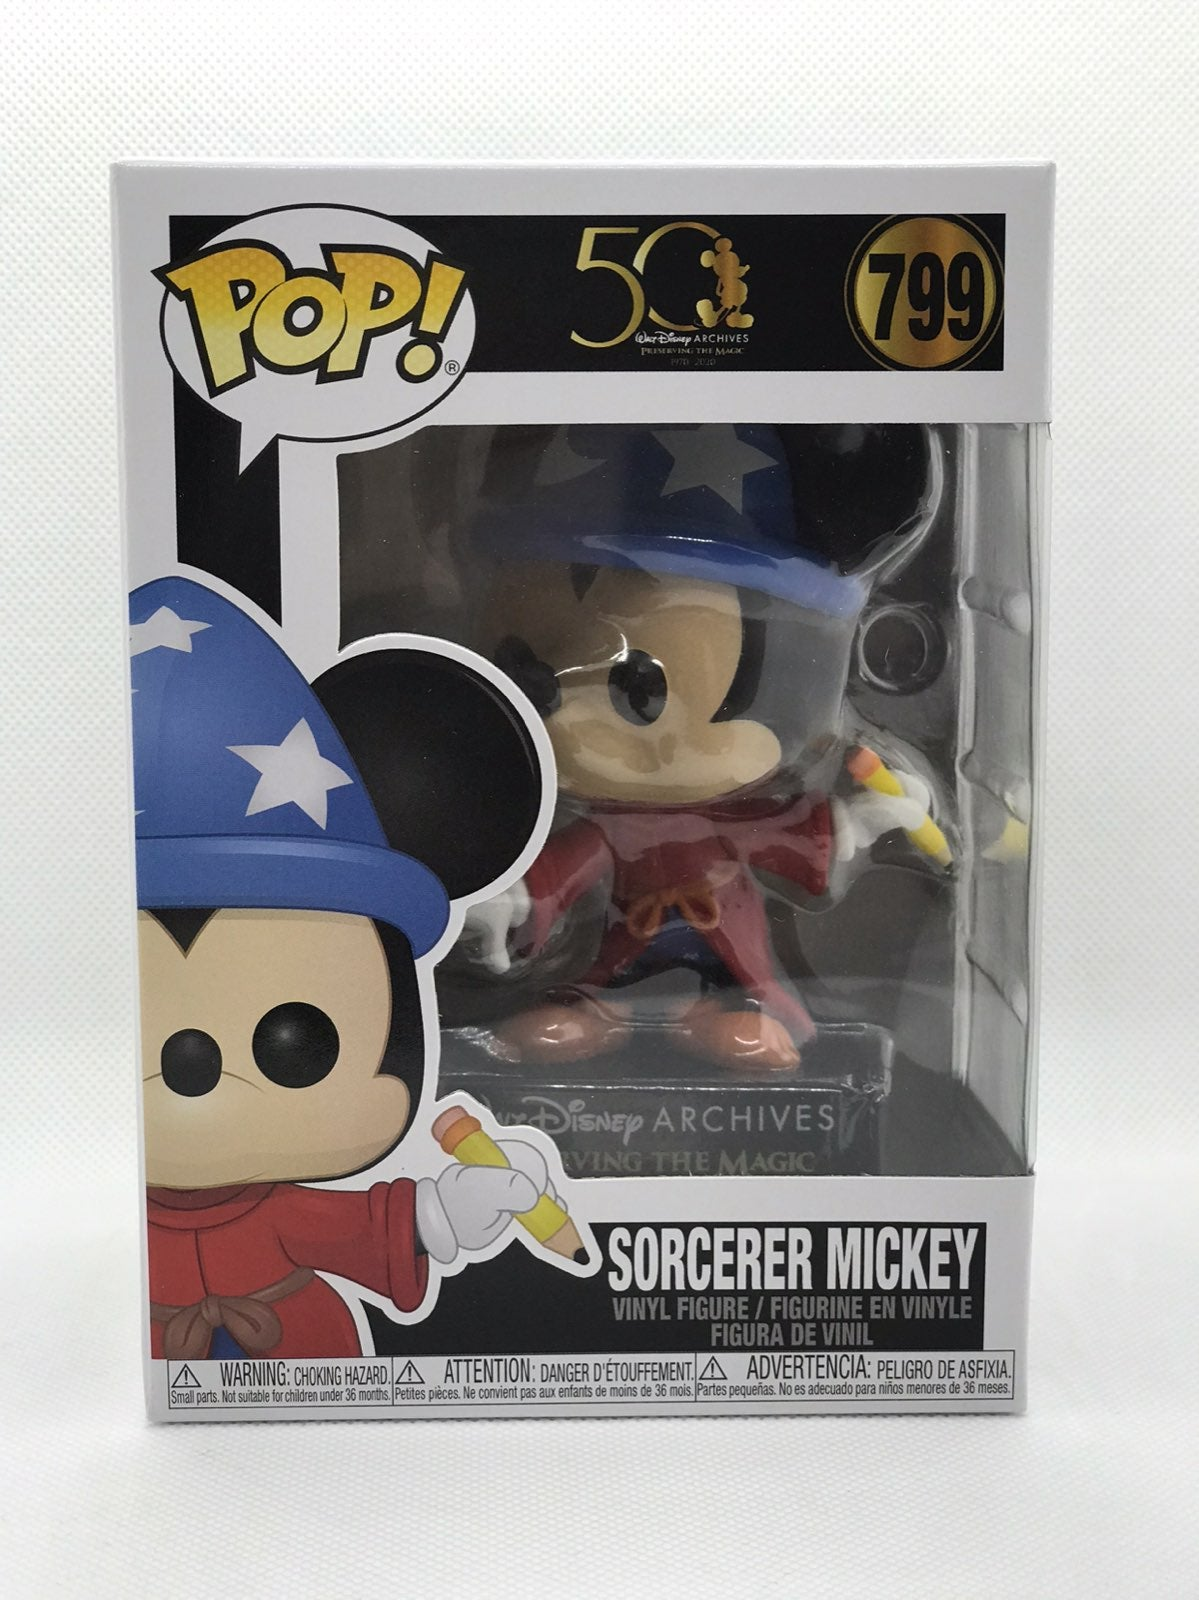 Funko Pop Disney Archives Sorcerer Micke